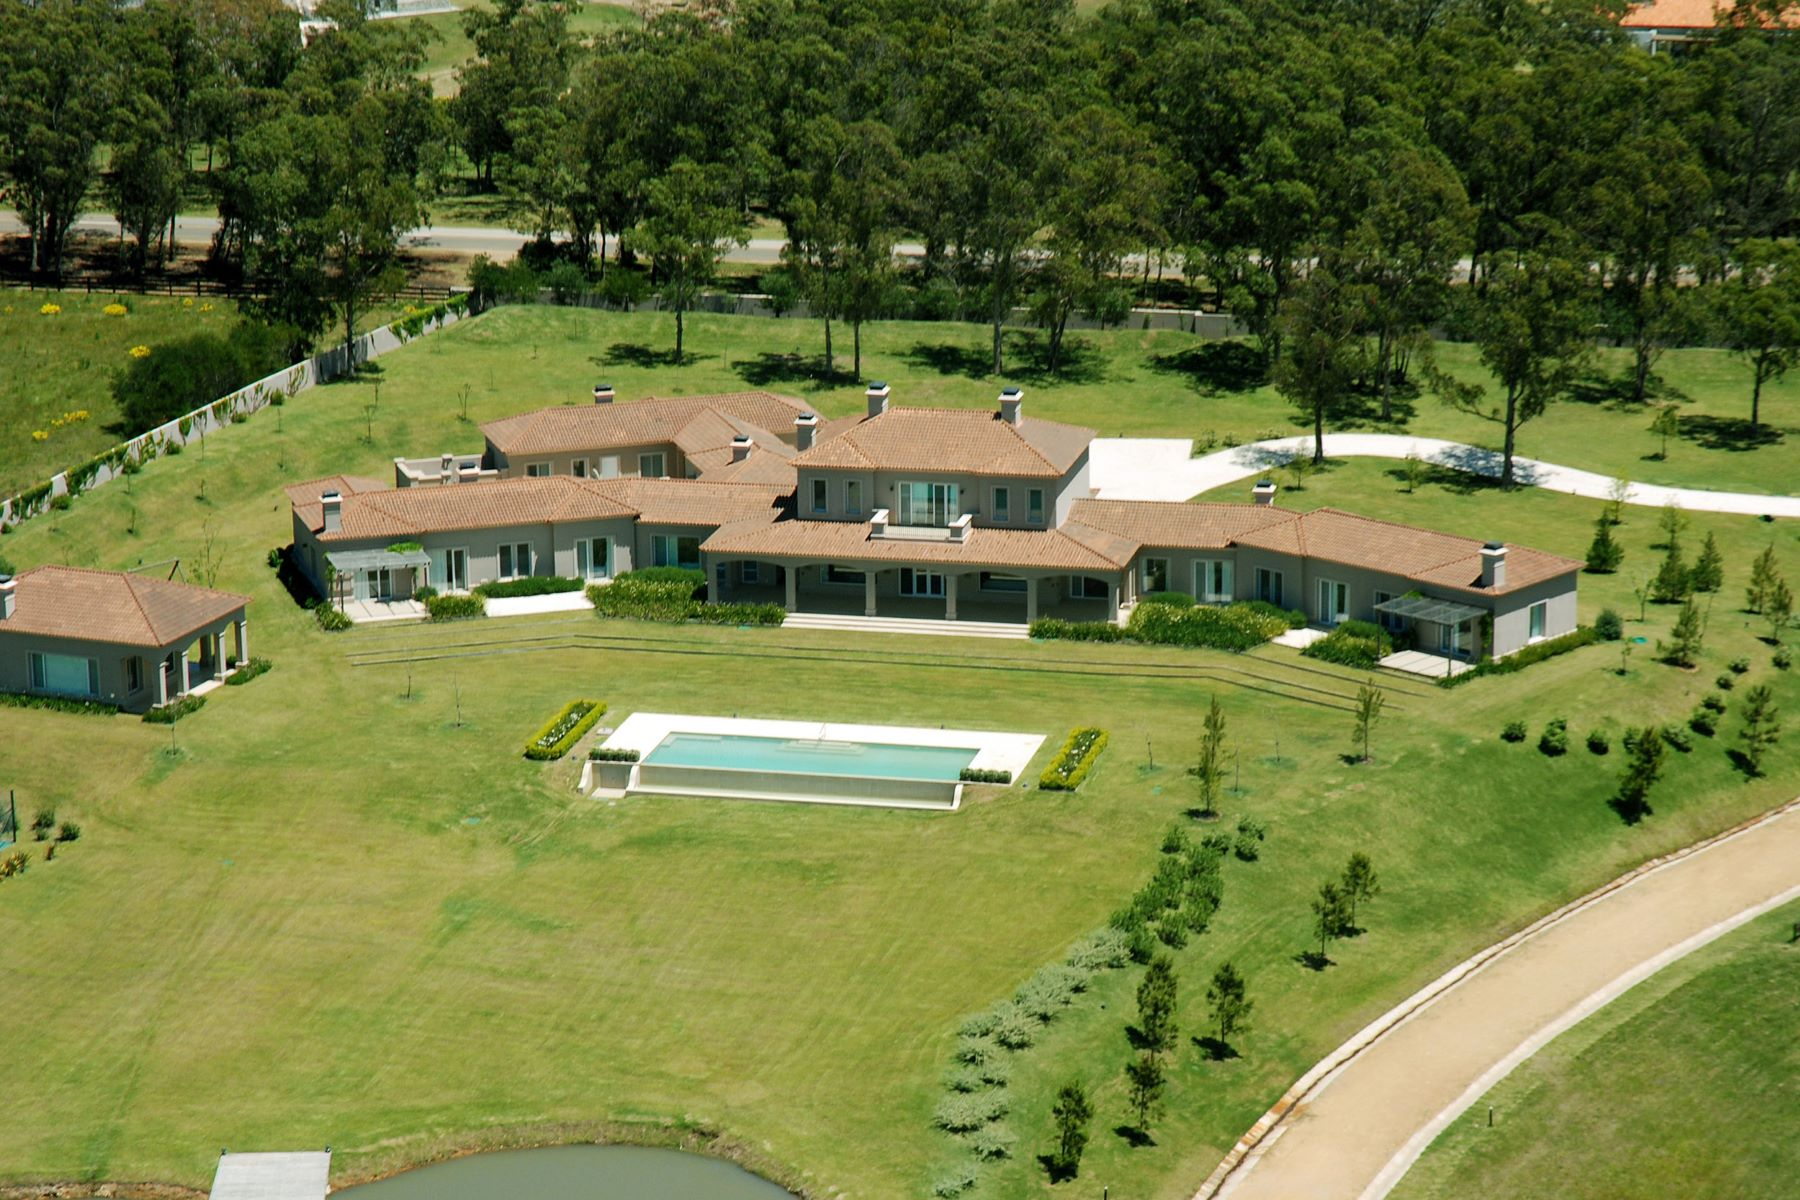 Single Family Homes for Sale at La Morada - Exceptional property La Morada - Ruta 104 La Barra, Maldonado 20002 Uruguay